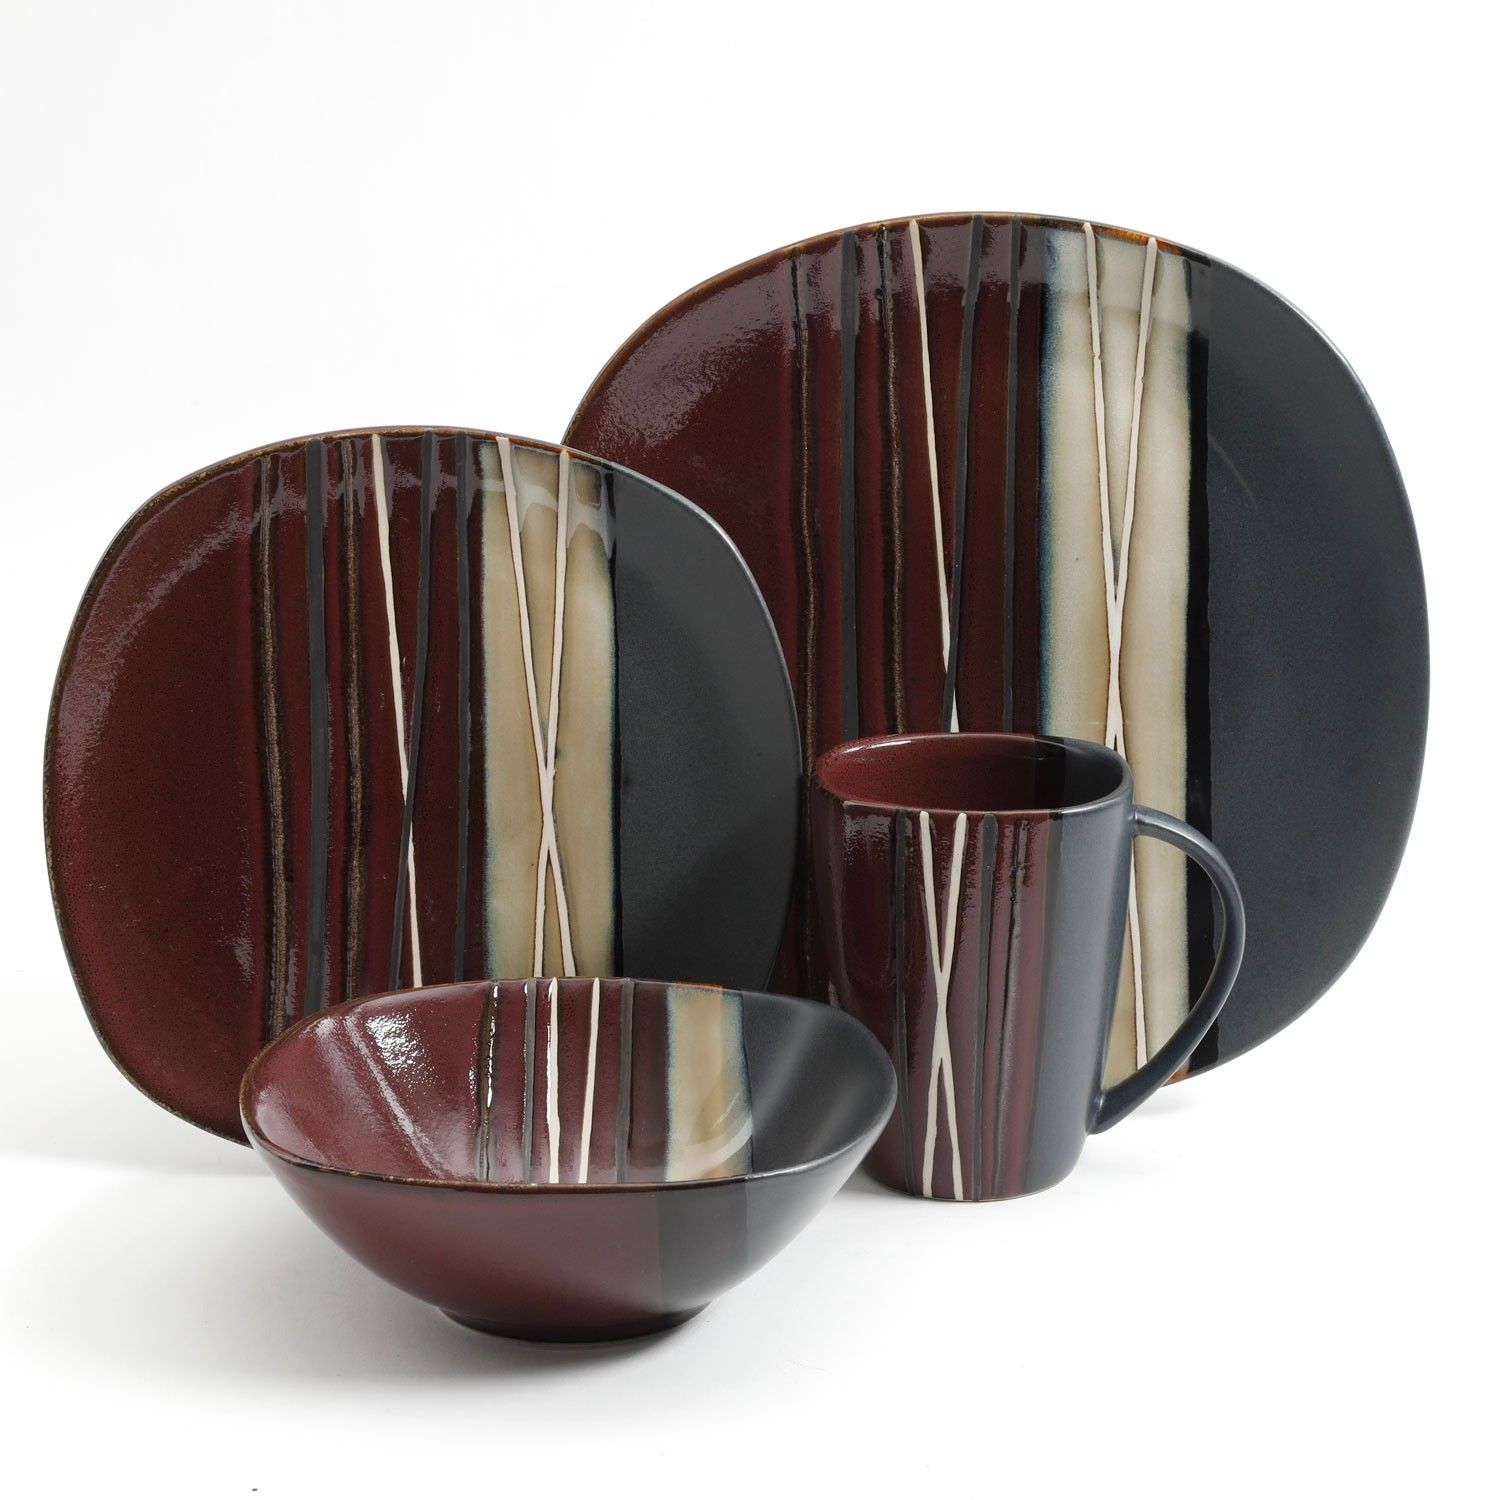 72947d252449bdb1d4e8c8e3824b67eb - Better Homes And Gardens Bazaar Brown Bowls